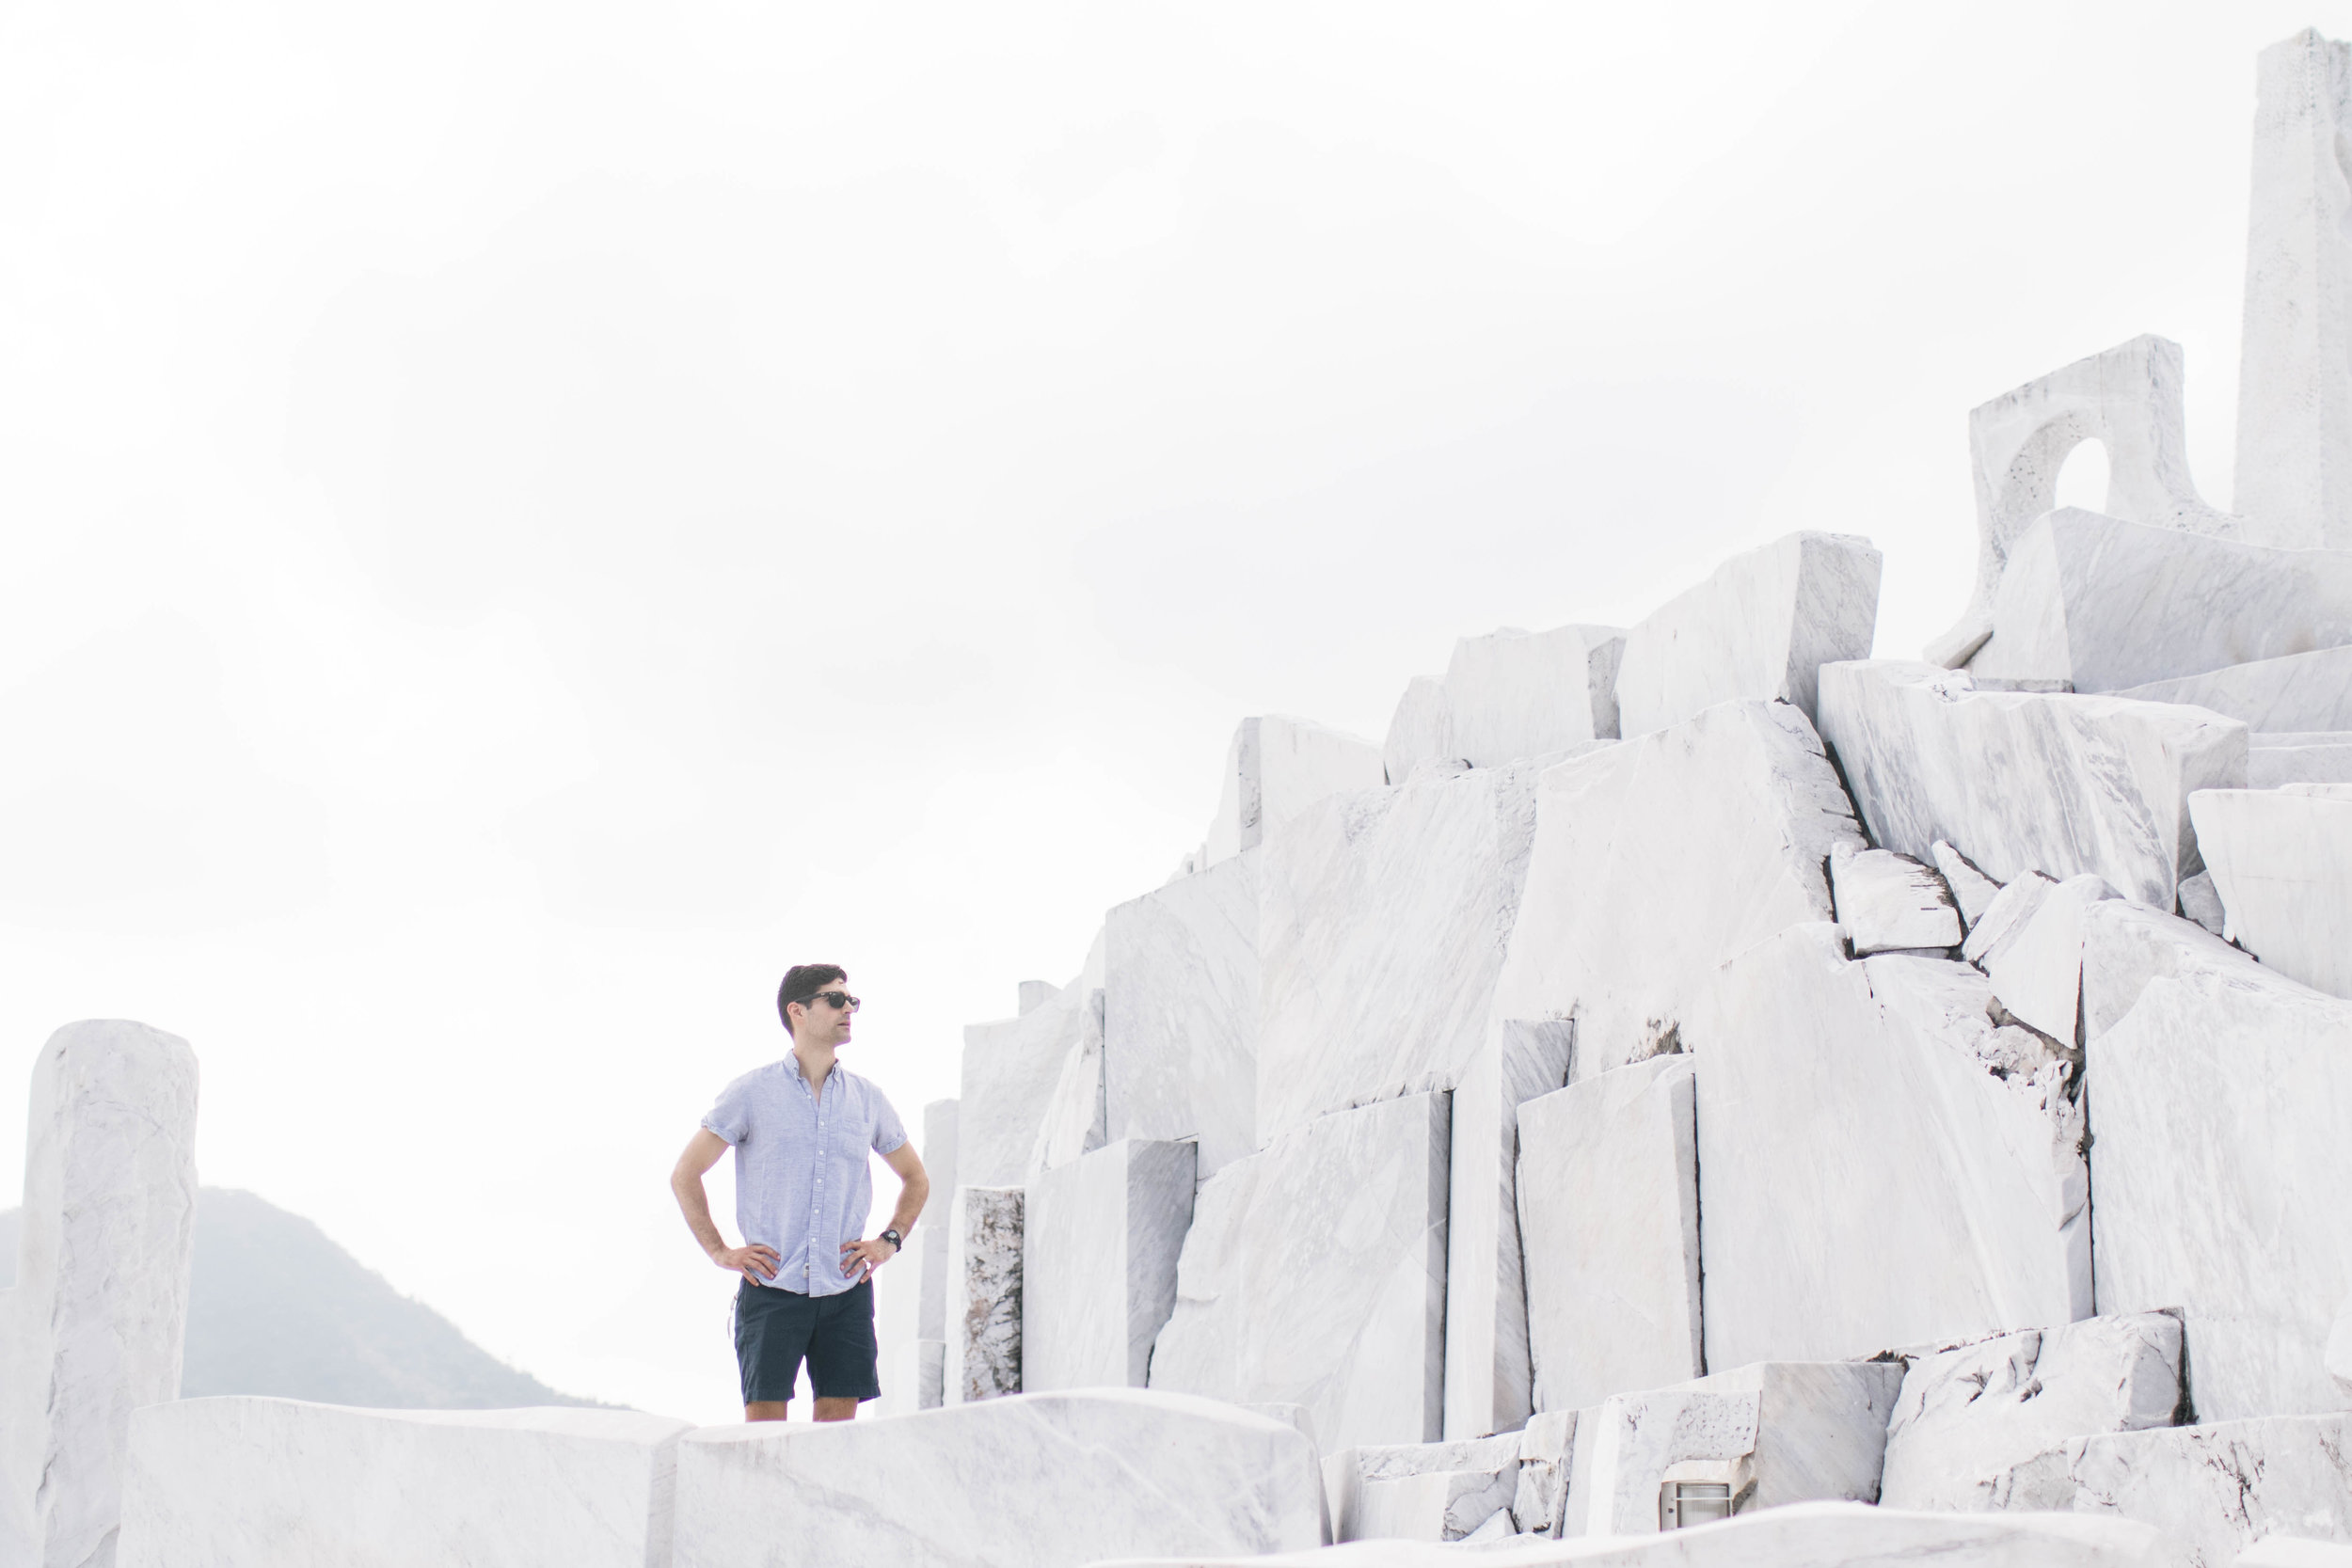 white-marble-hill-of-hope-photos-by-samantha-look.jpg